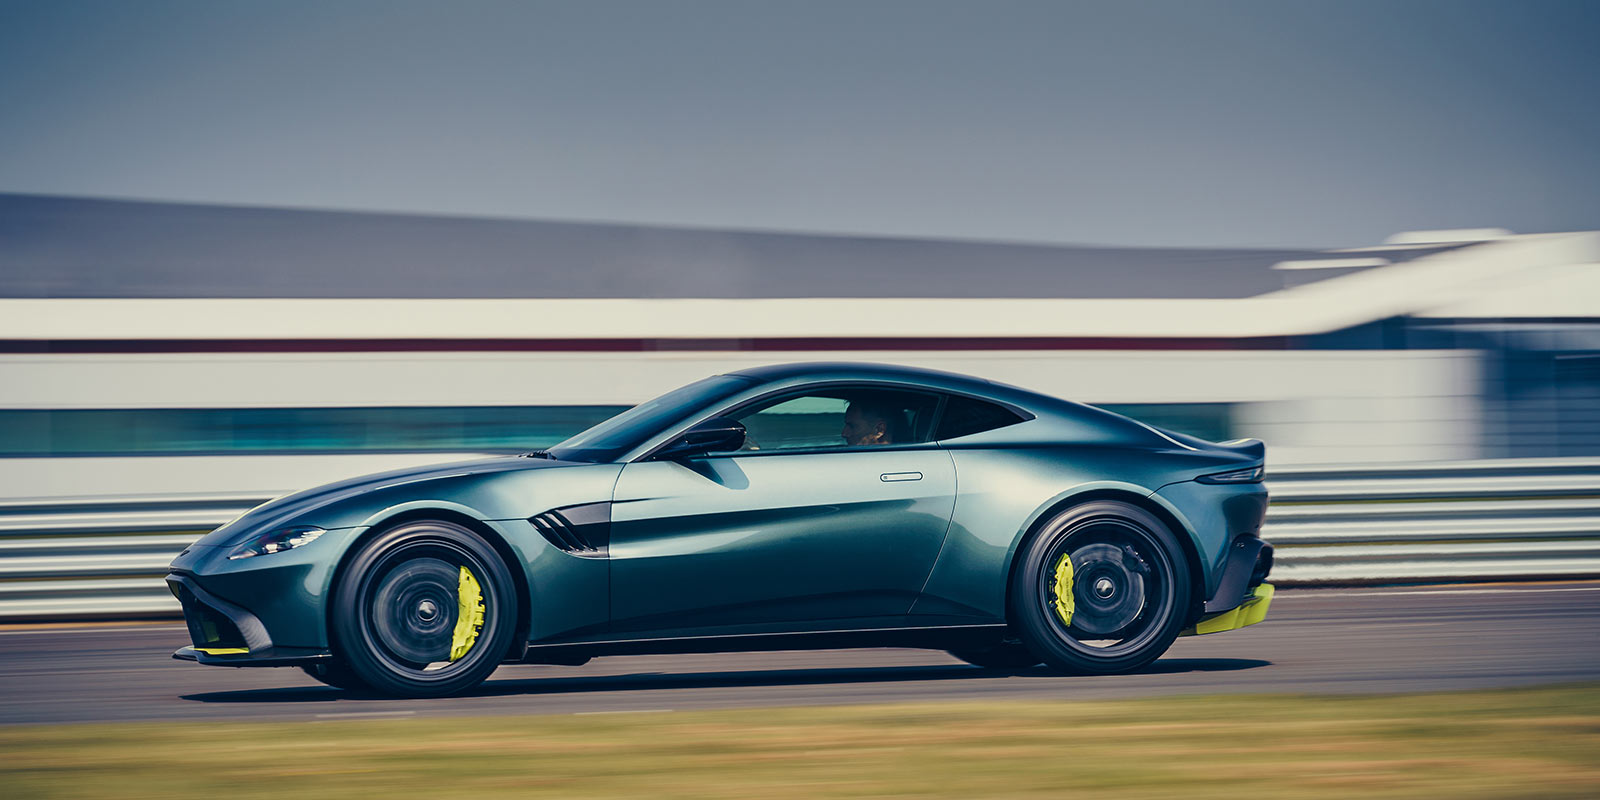 Aston Martin Vantage AMR - Limited Edition - Pure, Engaging Performance image 12